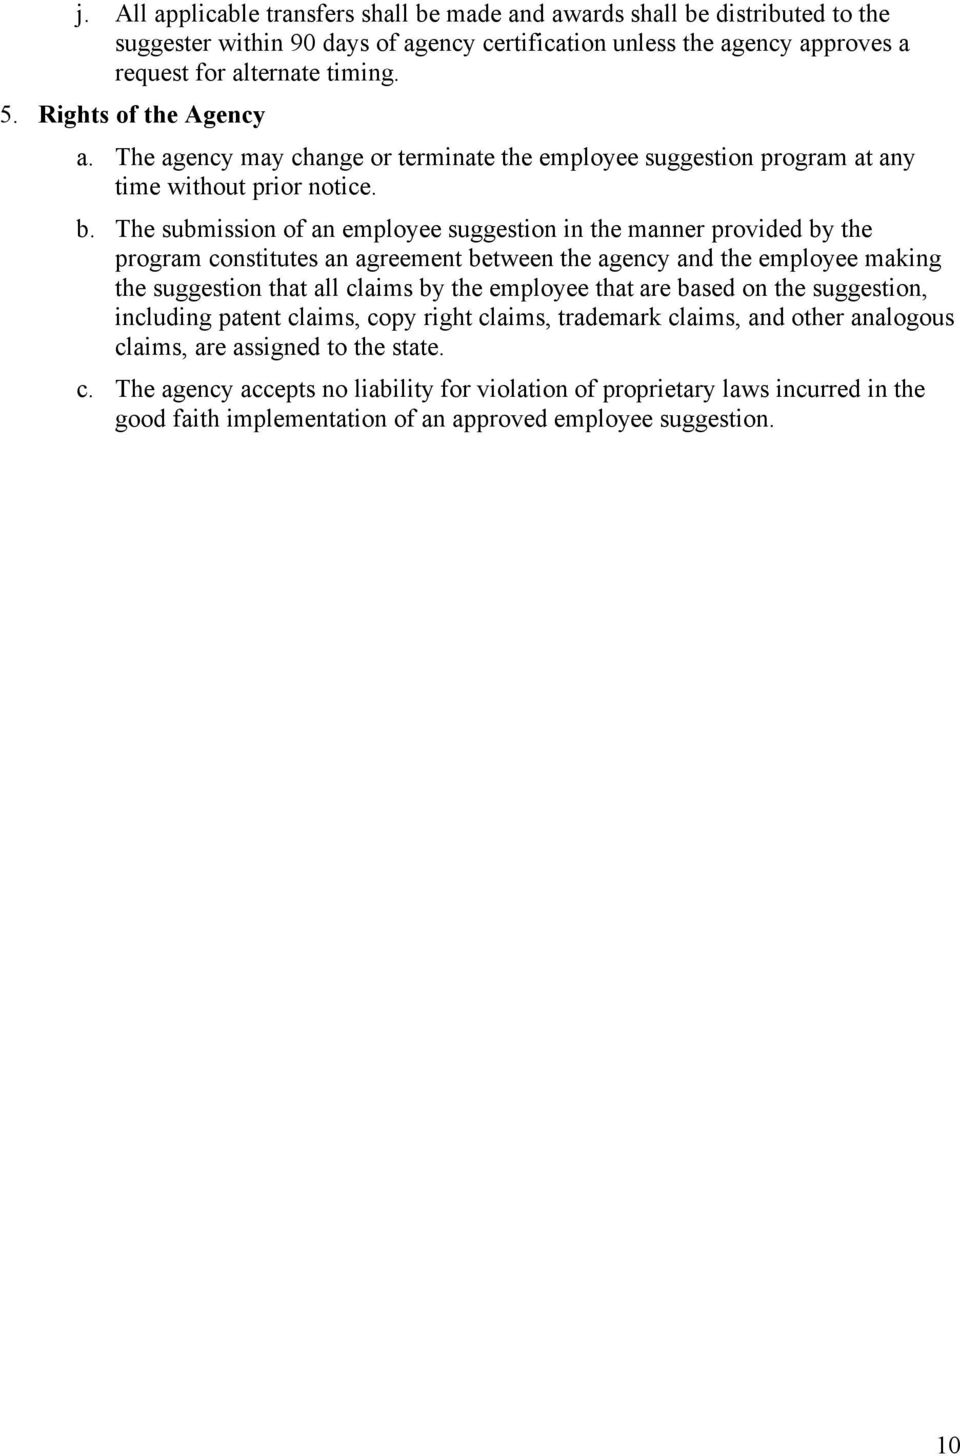 The submission of an employee suggestion in the manner provided by the program constitutes an agreement between the agency and the employee making the suggestion that all claims by the employee that